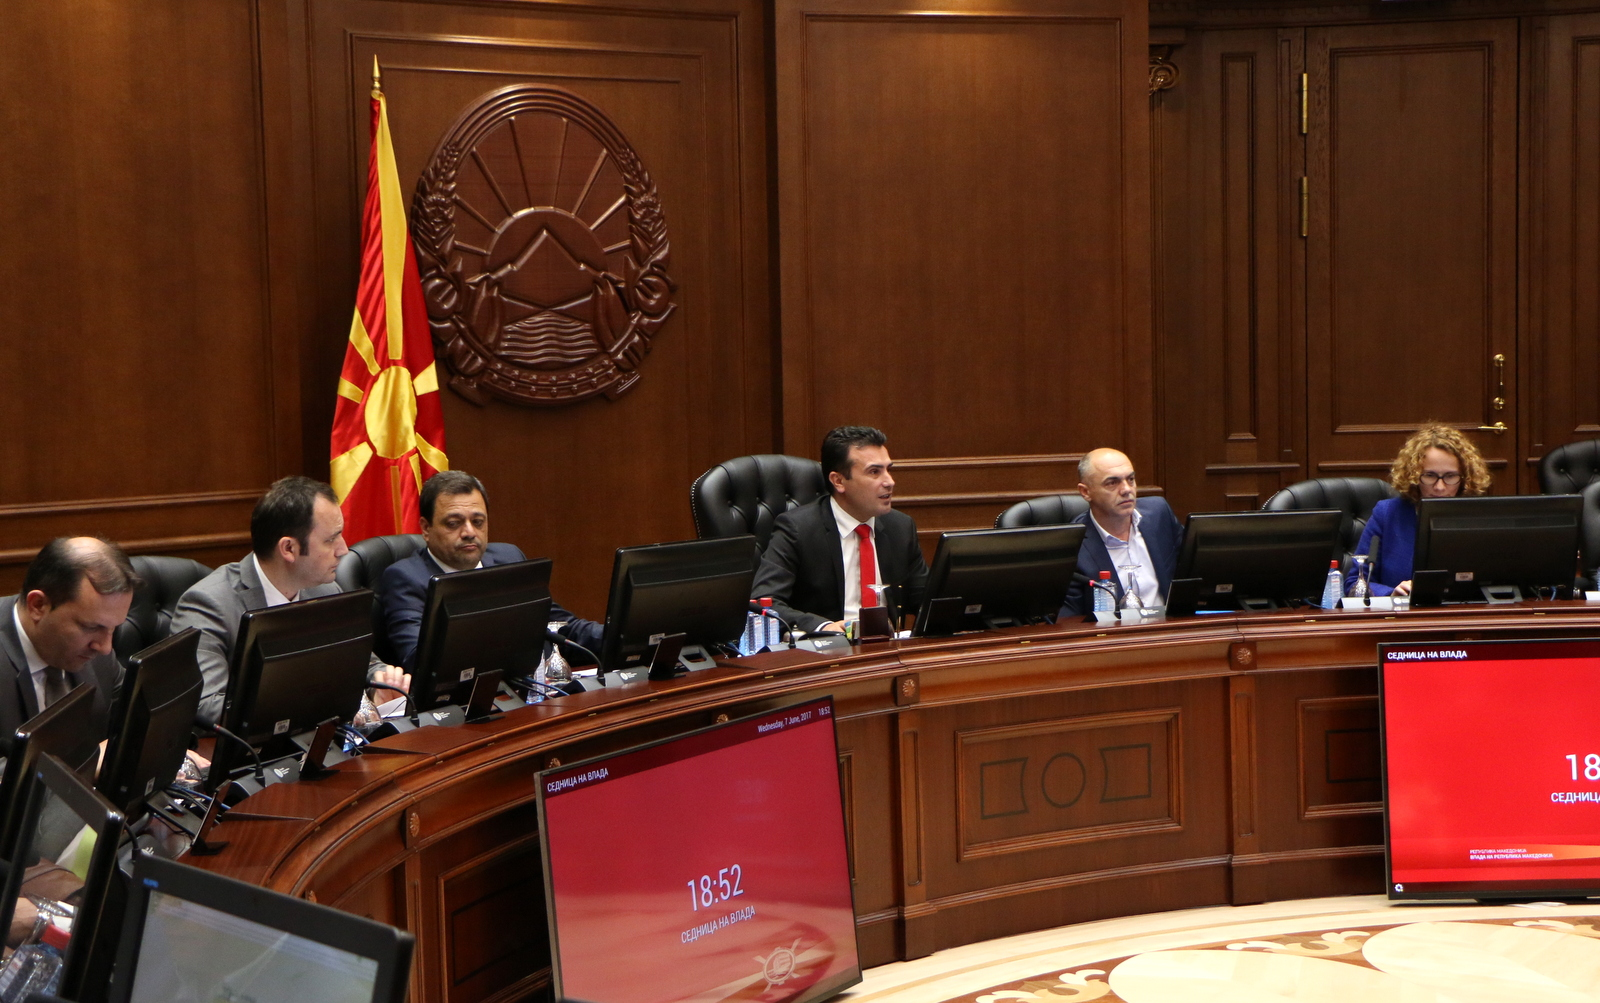 Cabinet reshuffle in North Macedonia triggers reactions